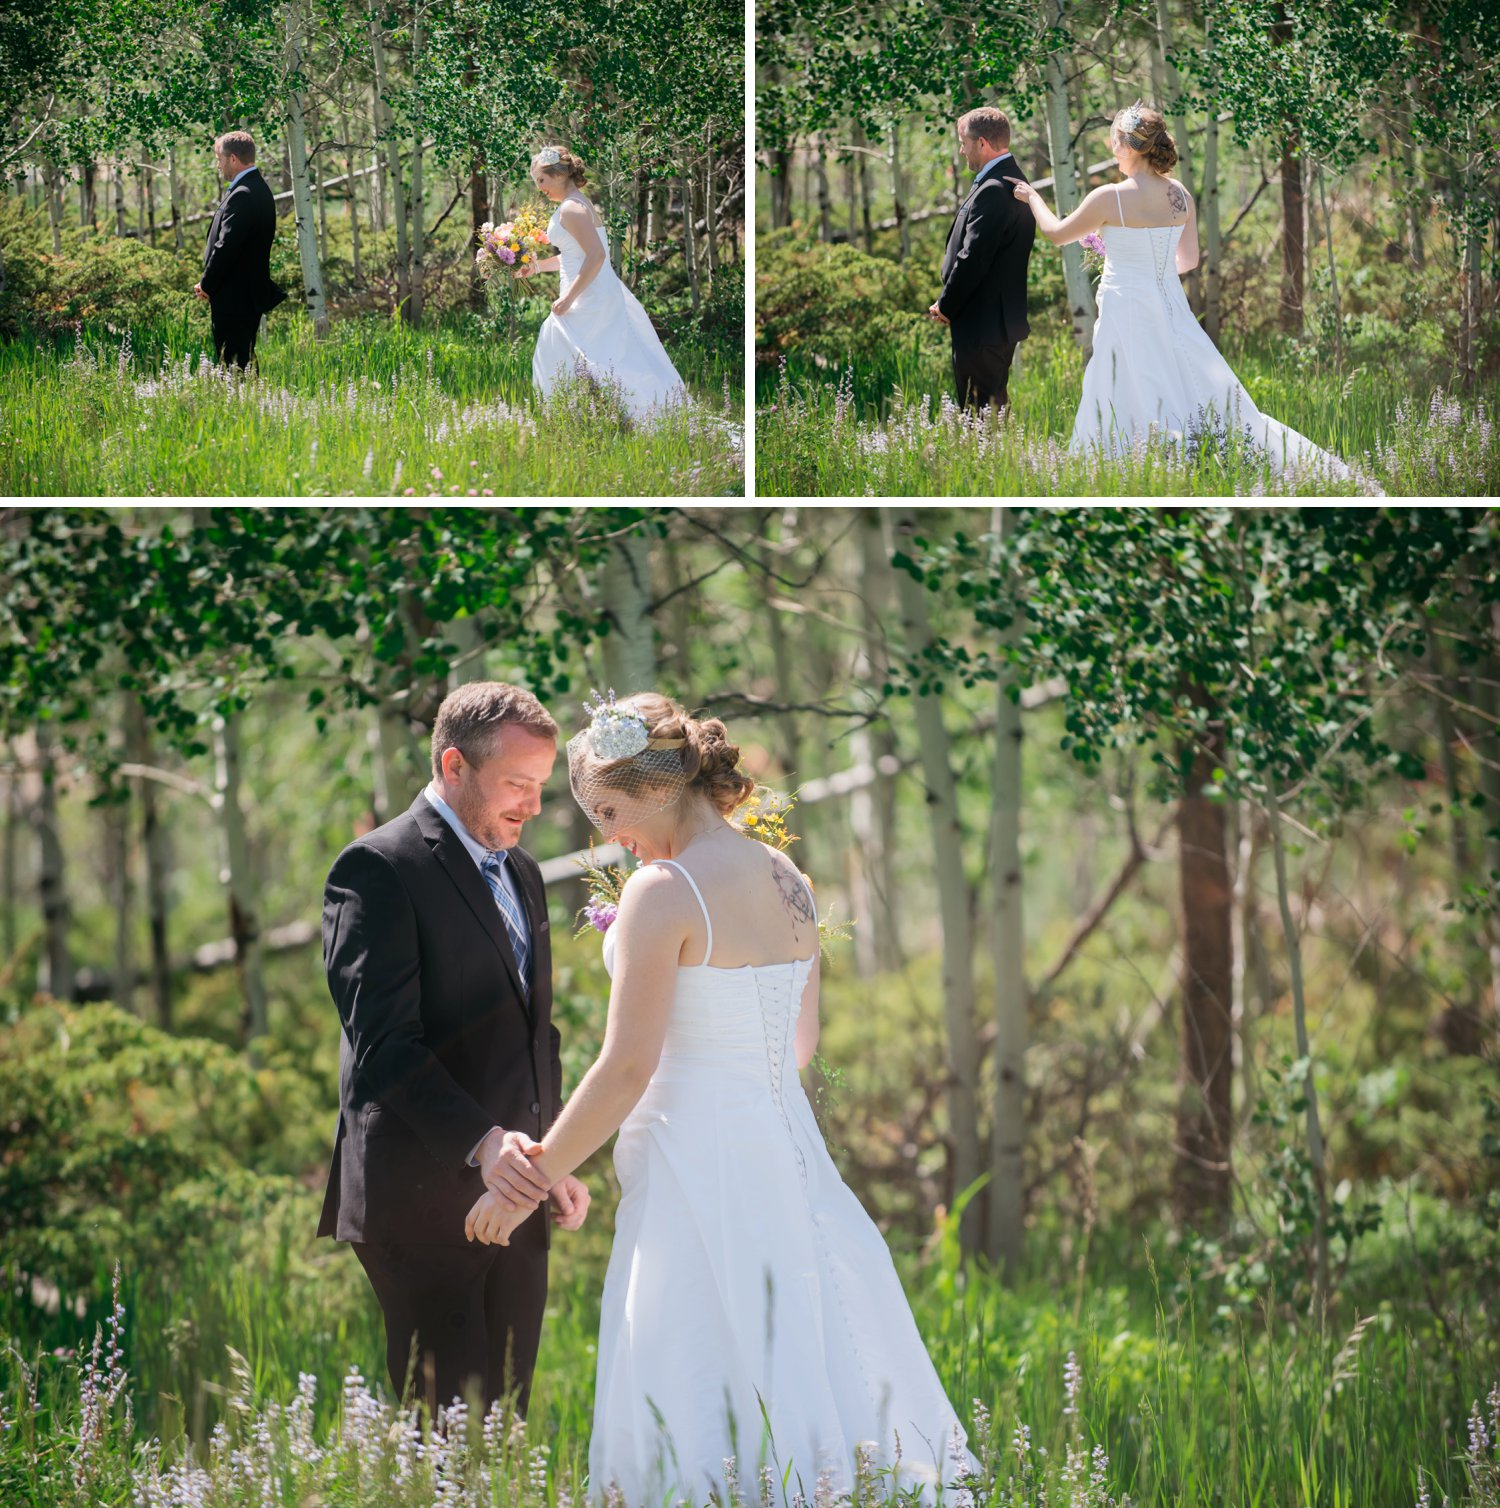 It was be amazing to have a first look in the middle of a meadow in the mountains. This is so beautiful! Photo by Maddie Mae Photography